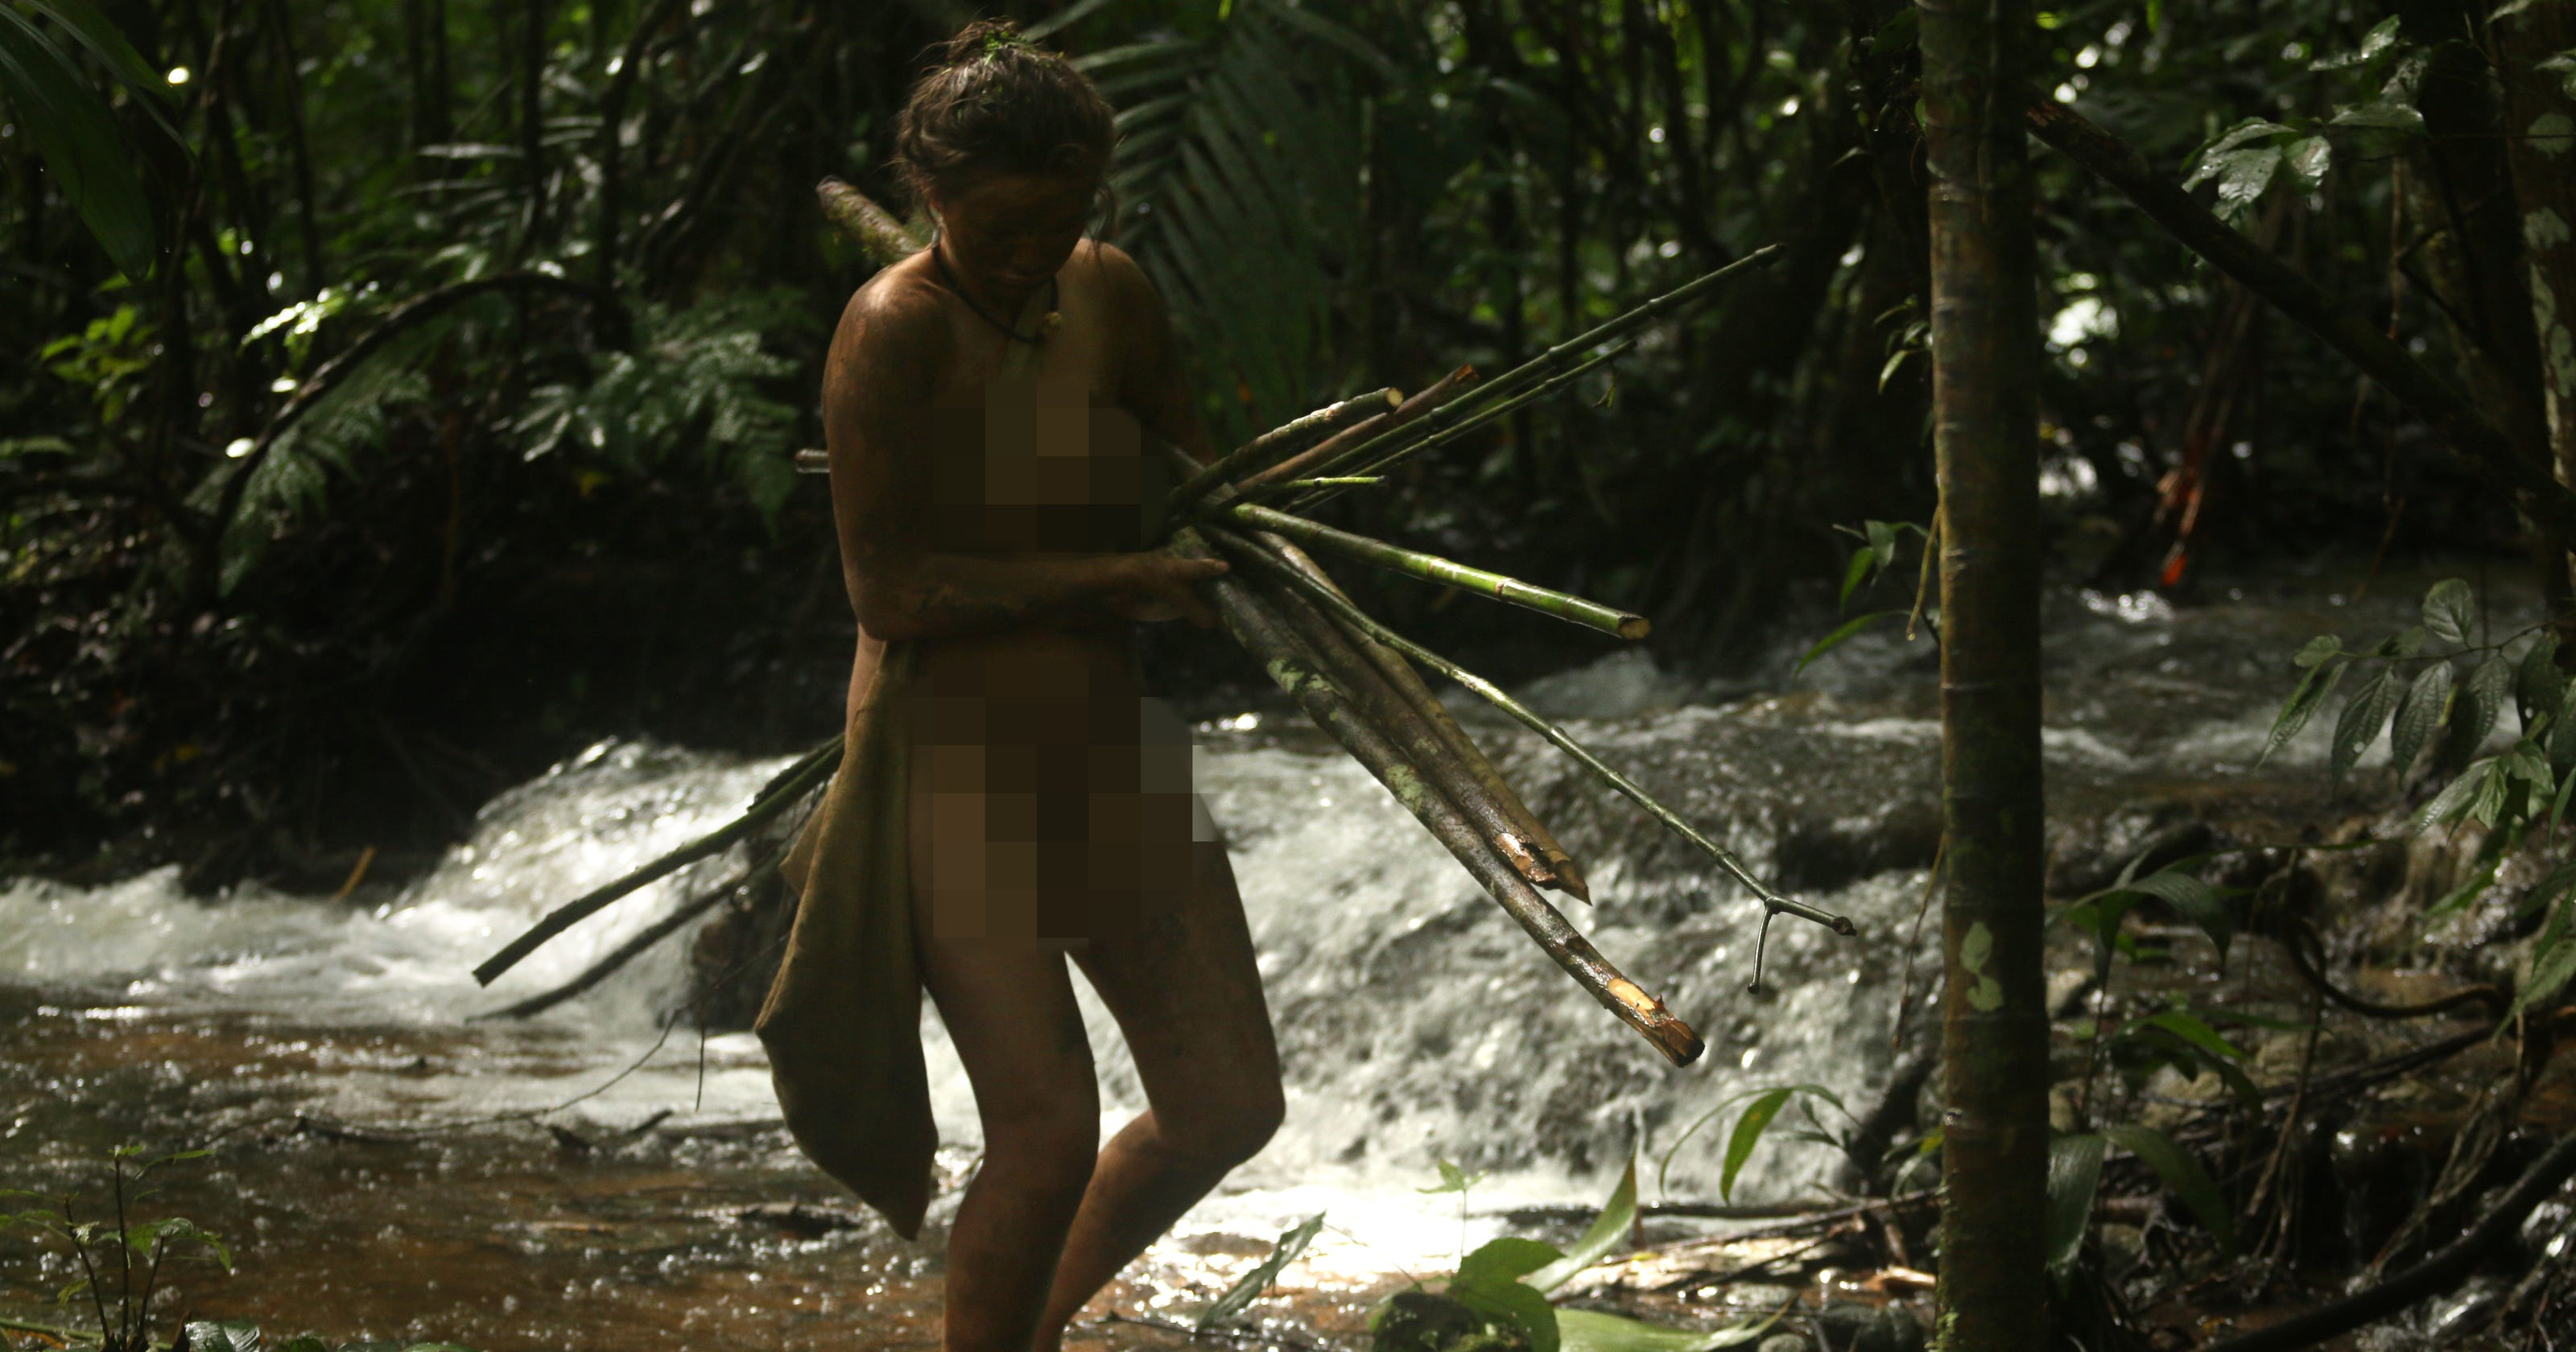 Naked and Afraid: find out how far Grant Parish